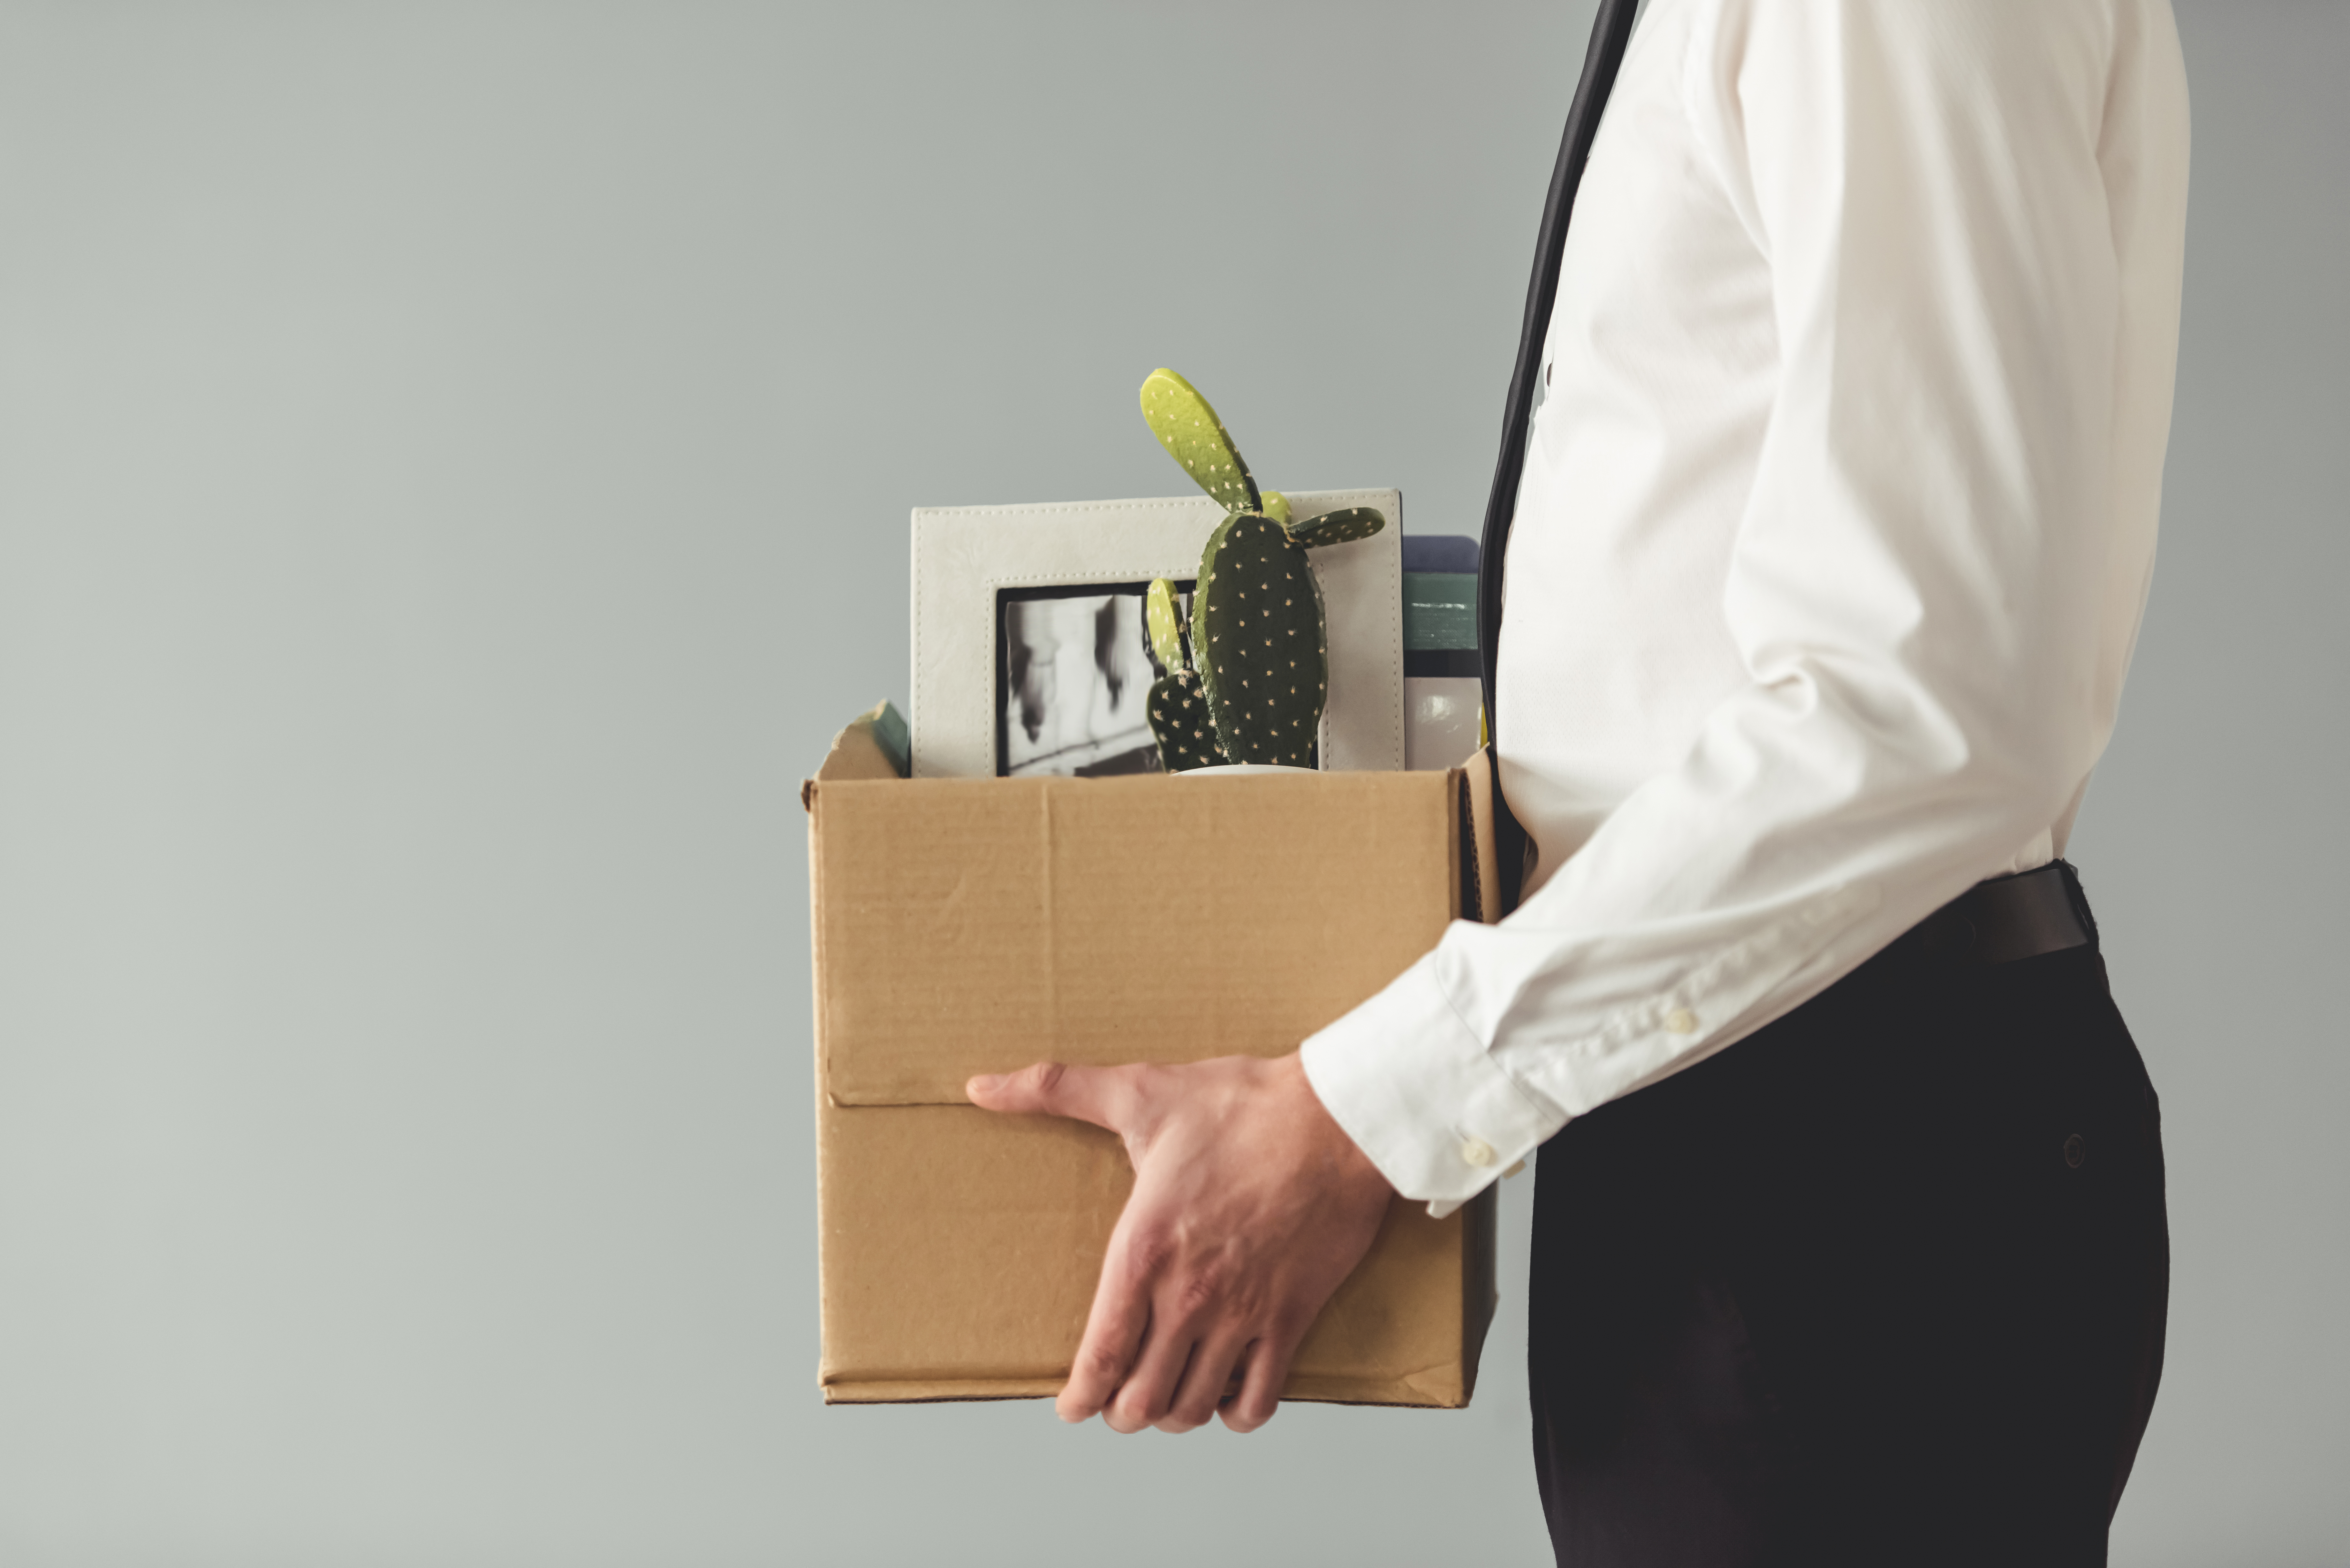 office worker carrying box of things